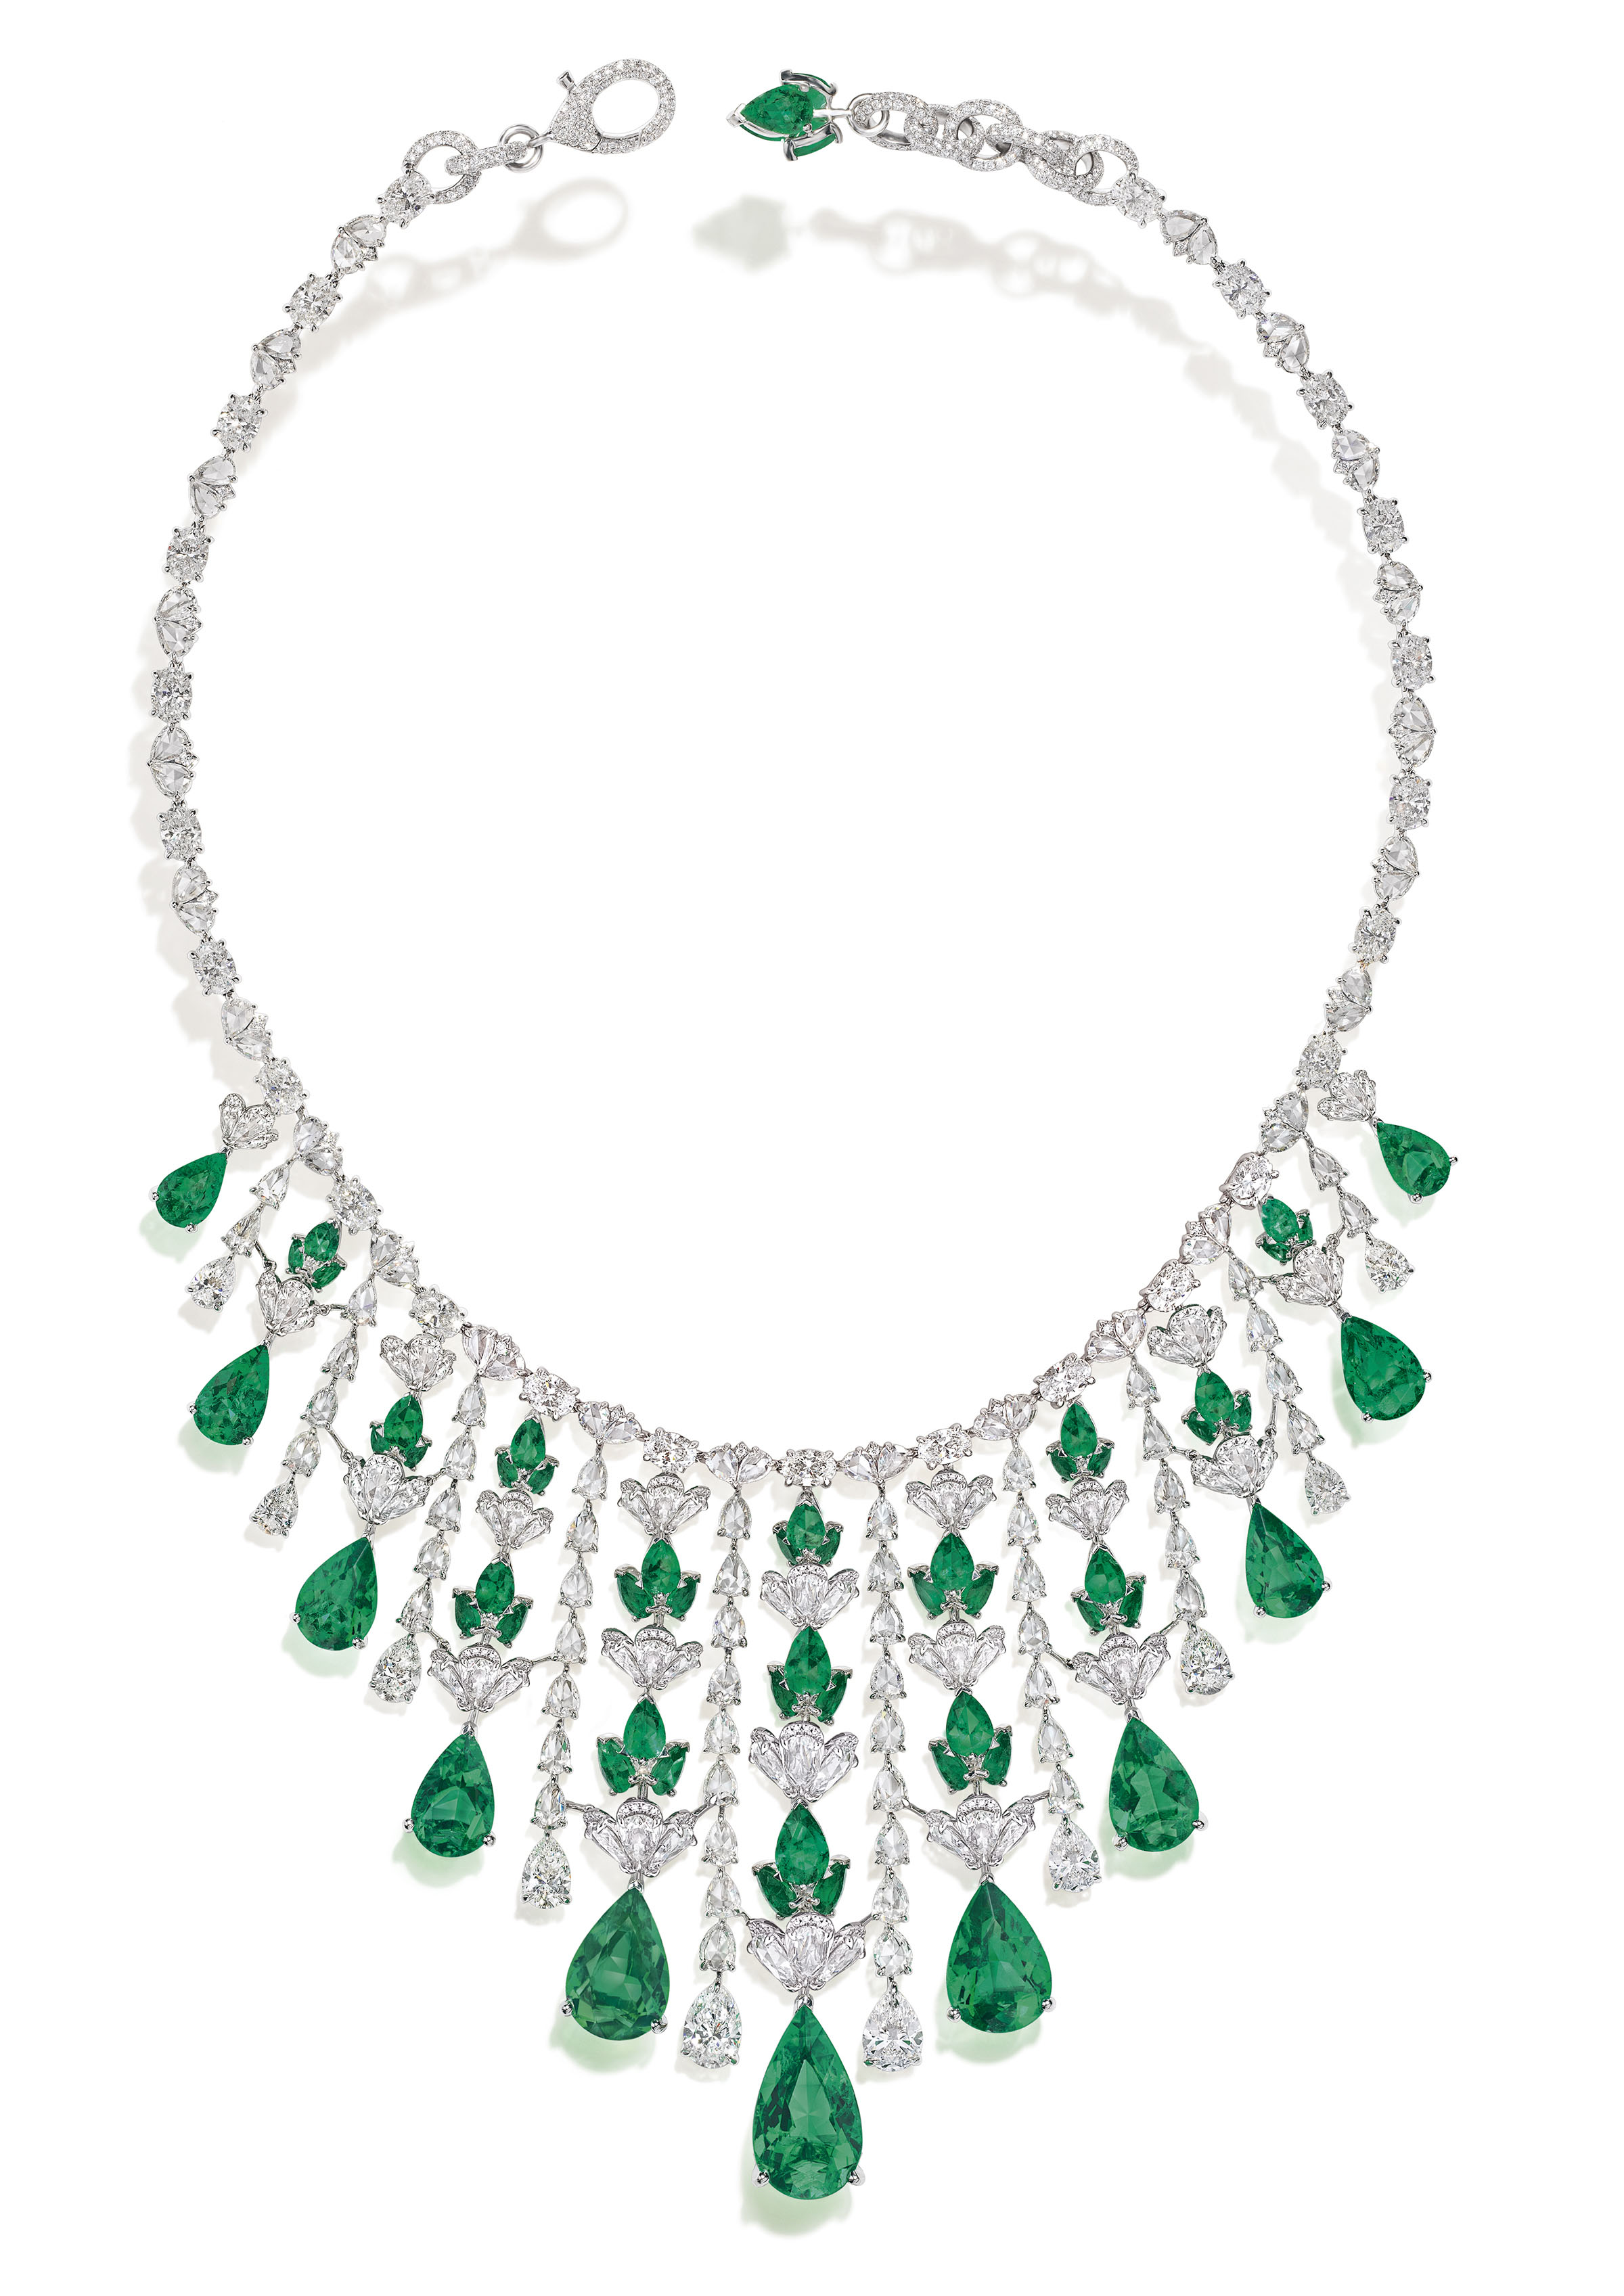 NIRAV MODI Emerald Waterfall Necklace